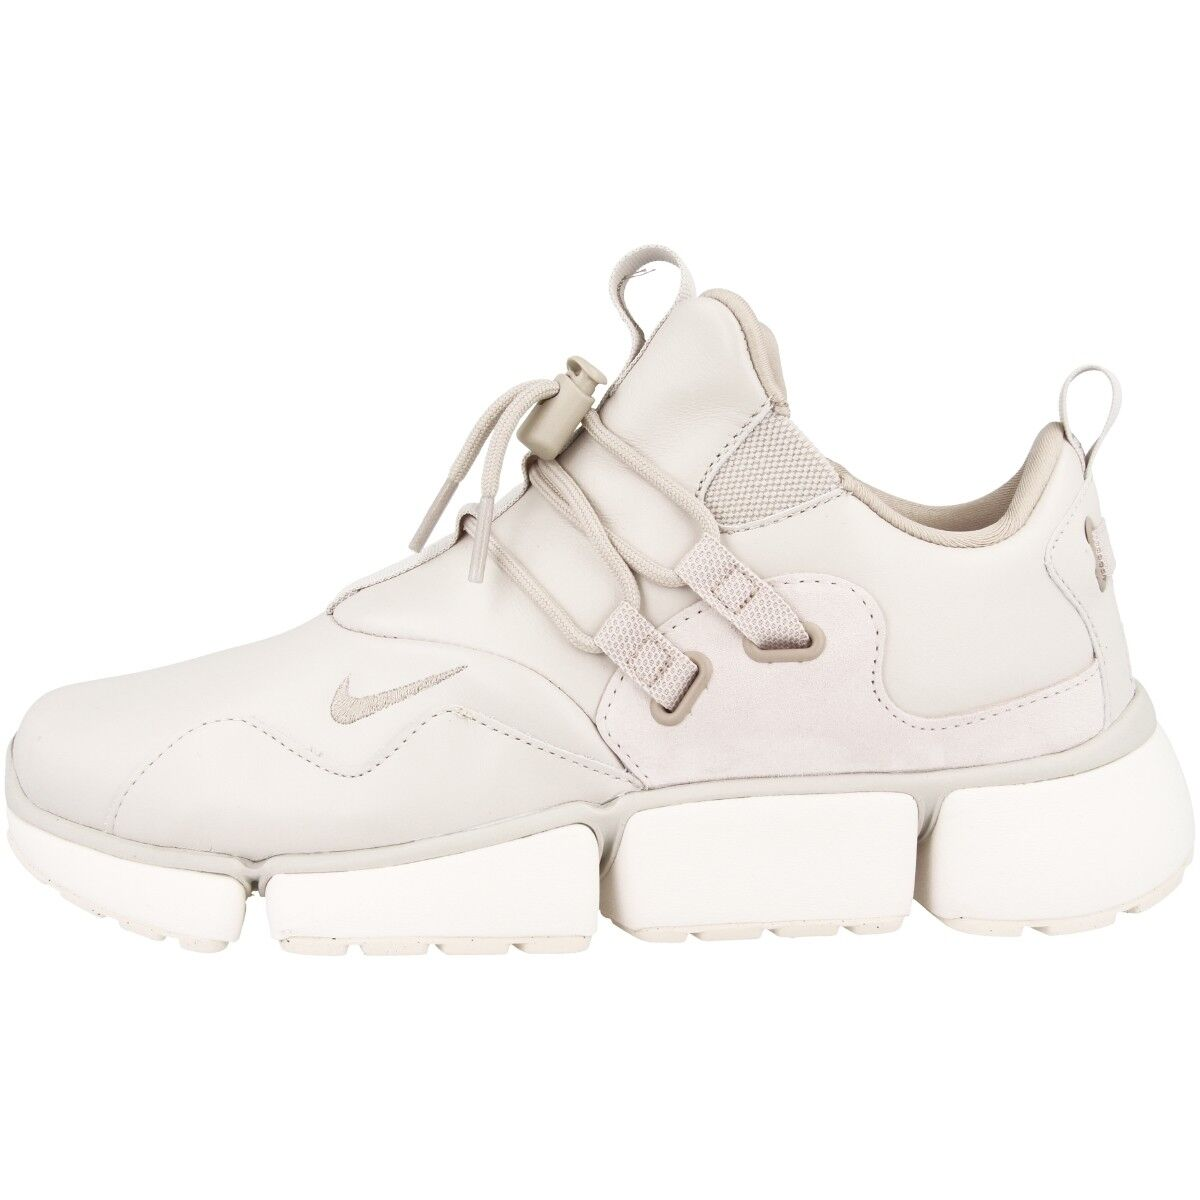 Nike Pocket Knife Dm Leather shoes Dynamic Motion Sneakers Running AH7360-002